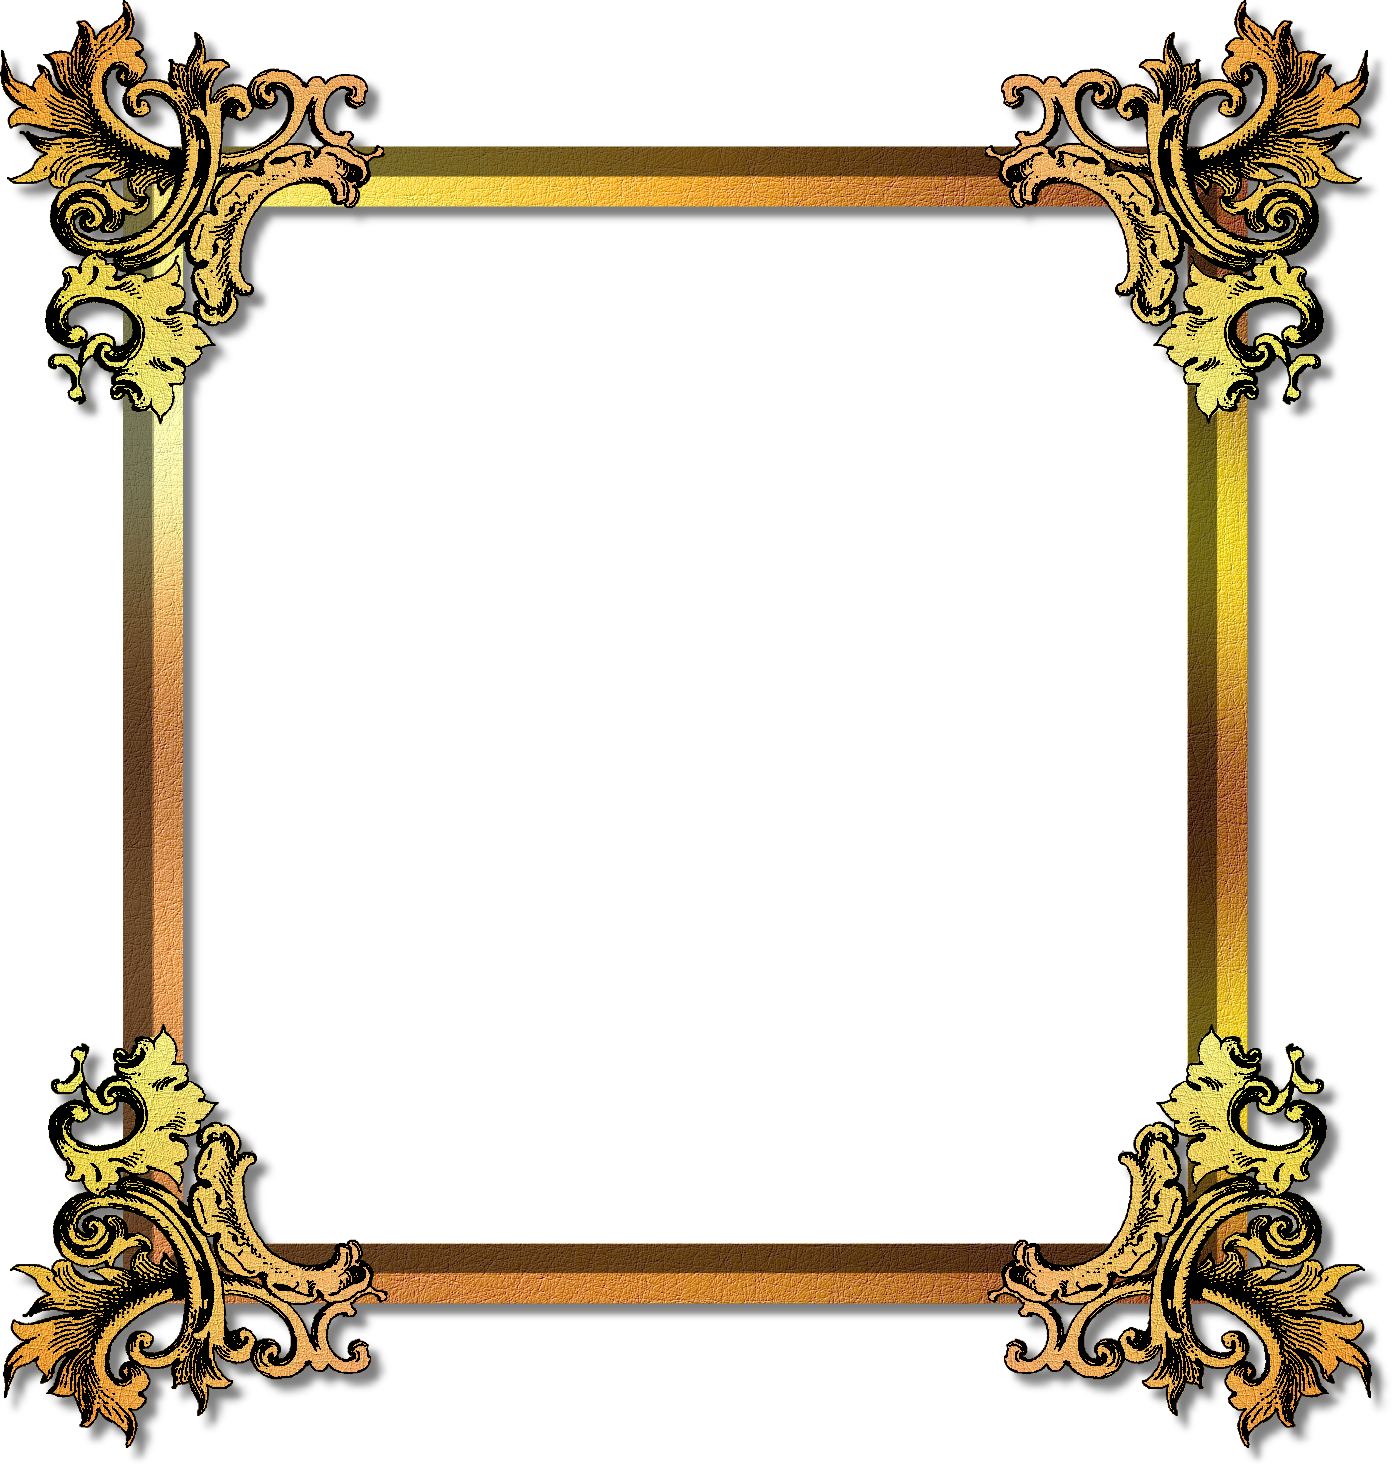 Pictures of gold frames search results calendar 2015